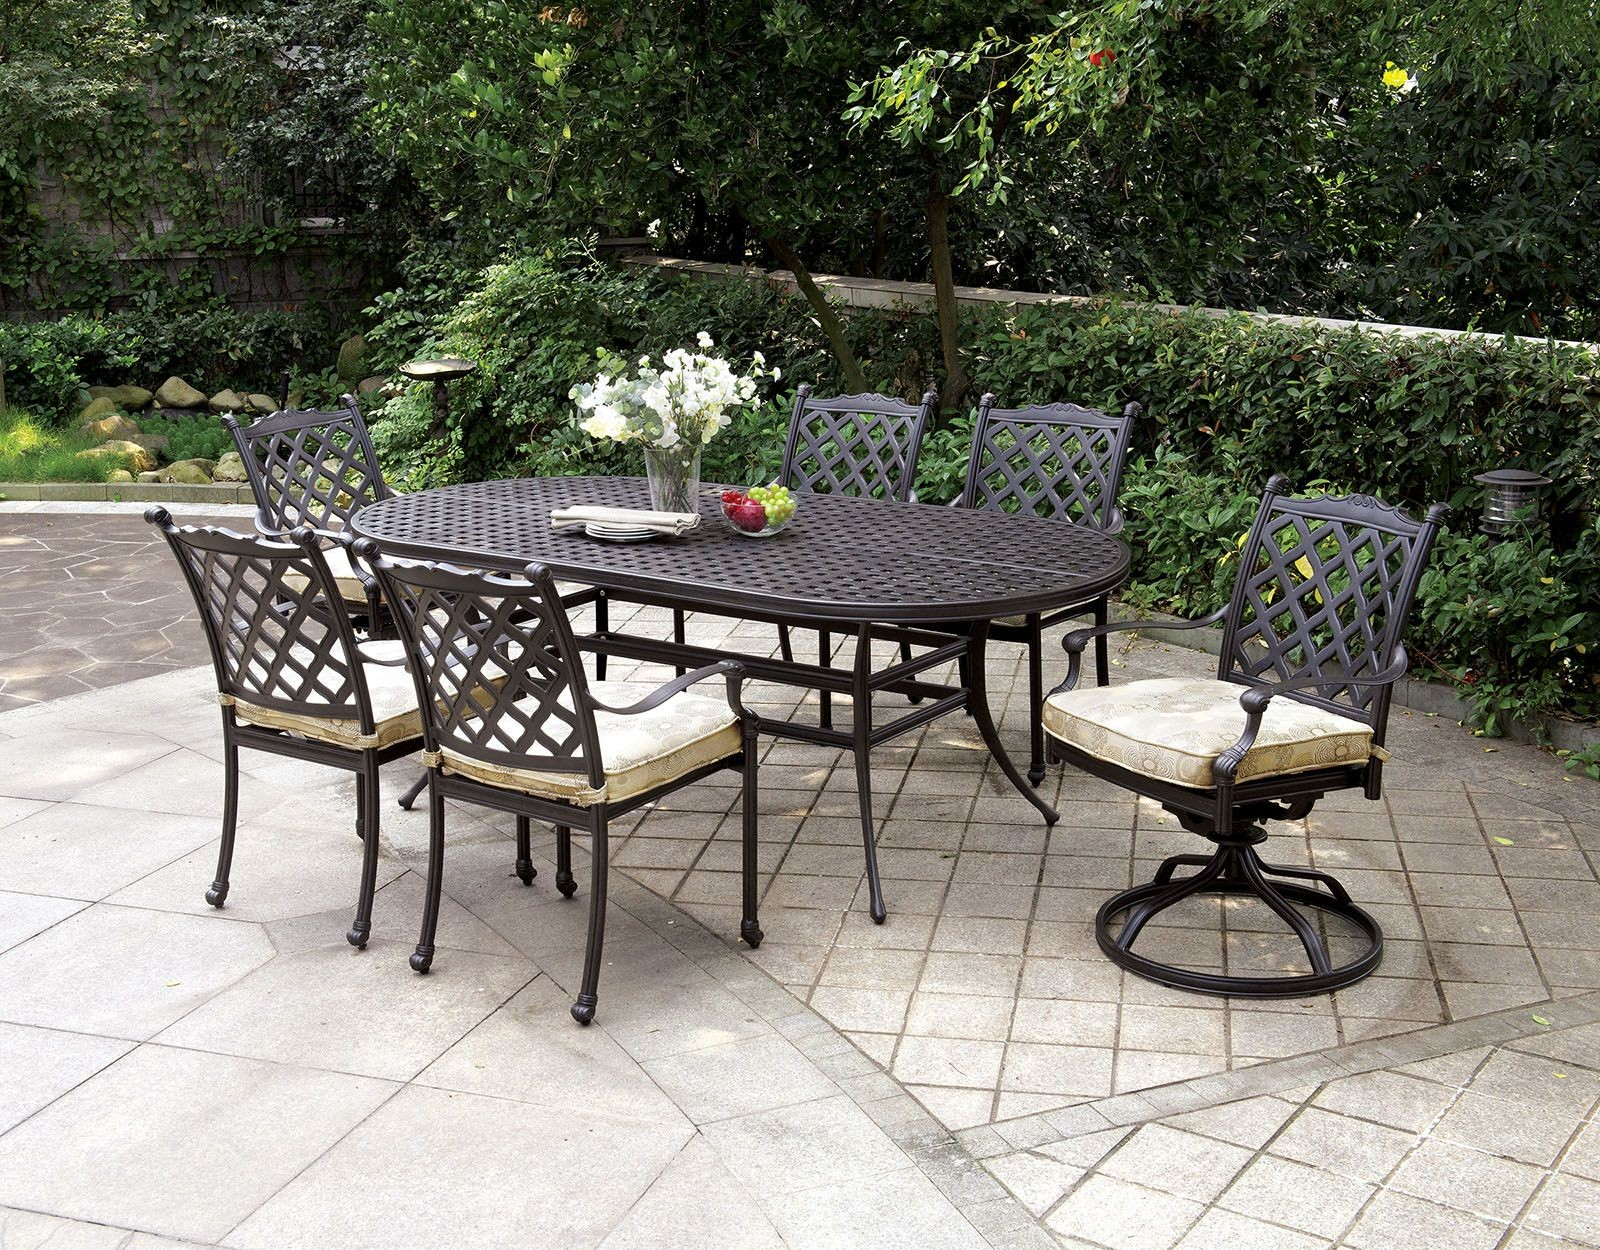 Chiara I Dark Gray Oval Patio Dining Room Set From Furniture Of America Coleman Furniture